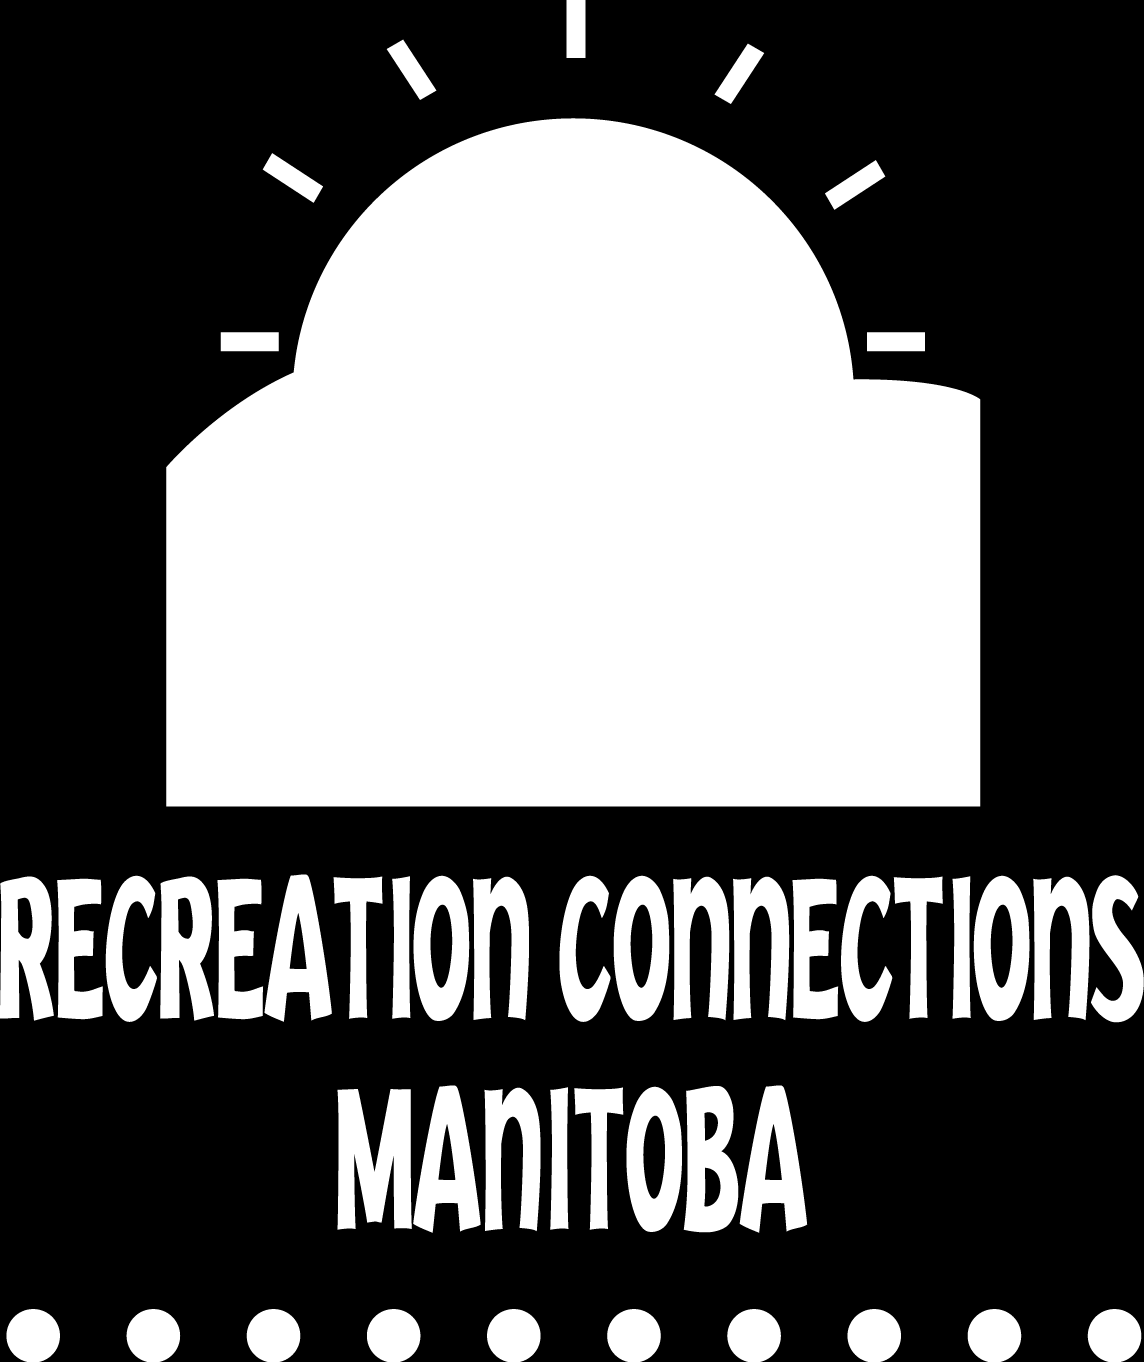 20th Annual Recreation Conference February 24th - 26th, 2016